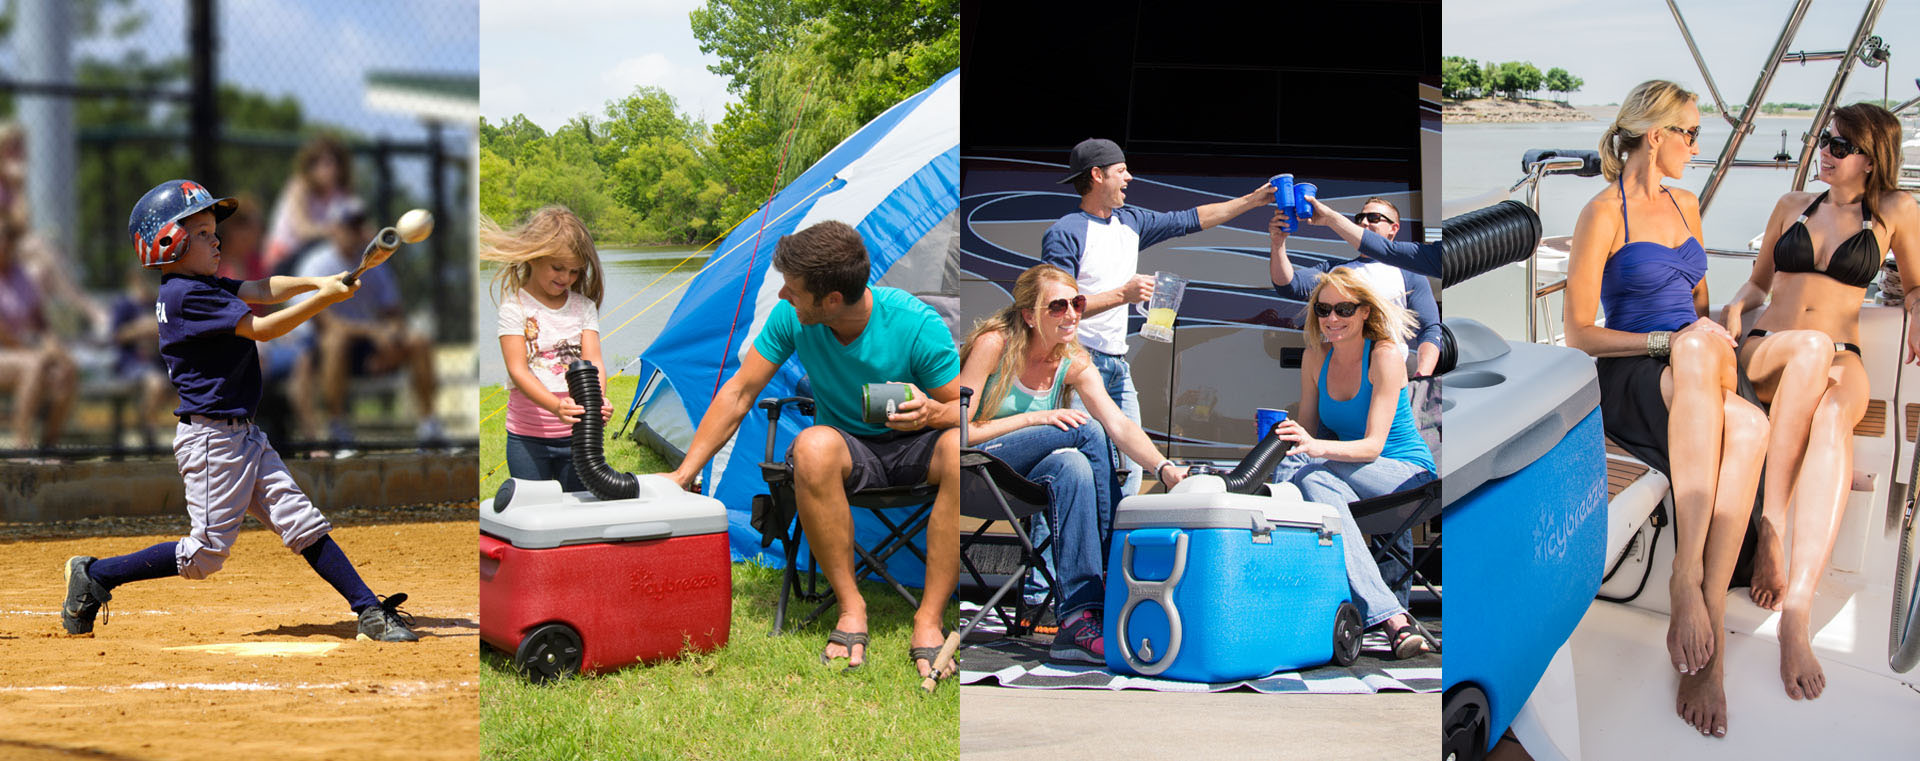 Keeping cool at the campsite is a breeze with our portable camping air conditioner.